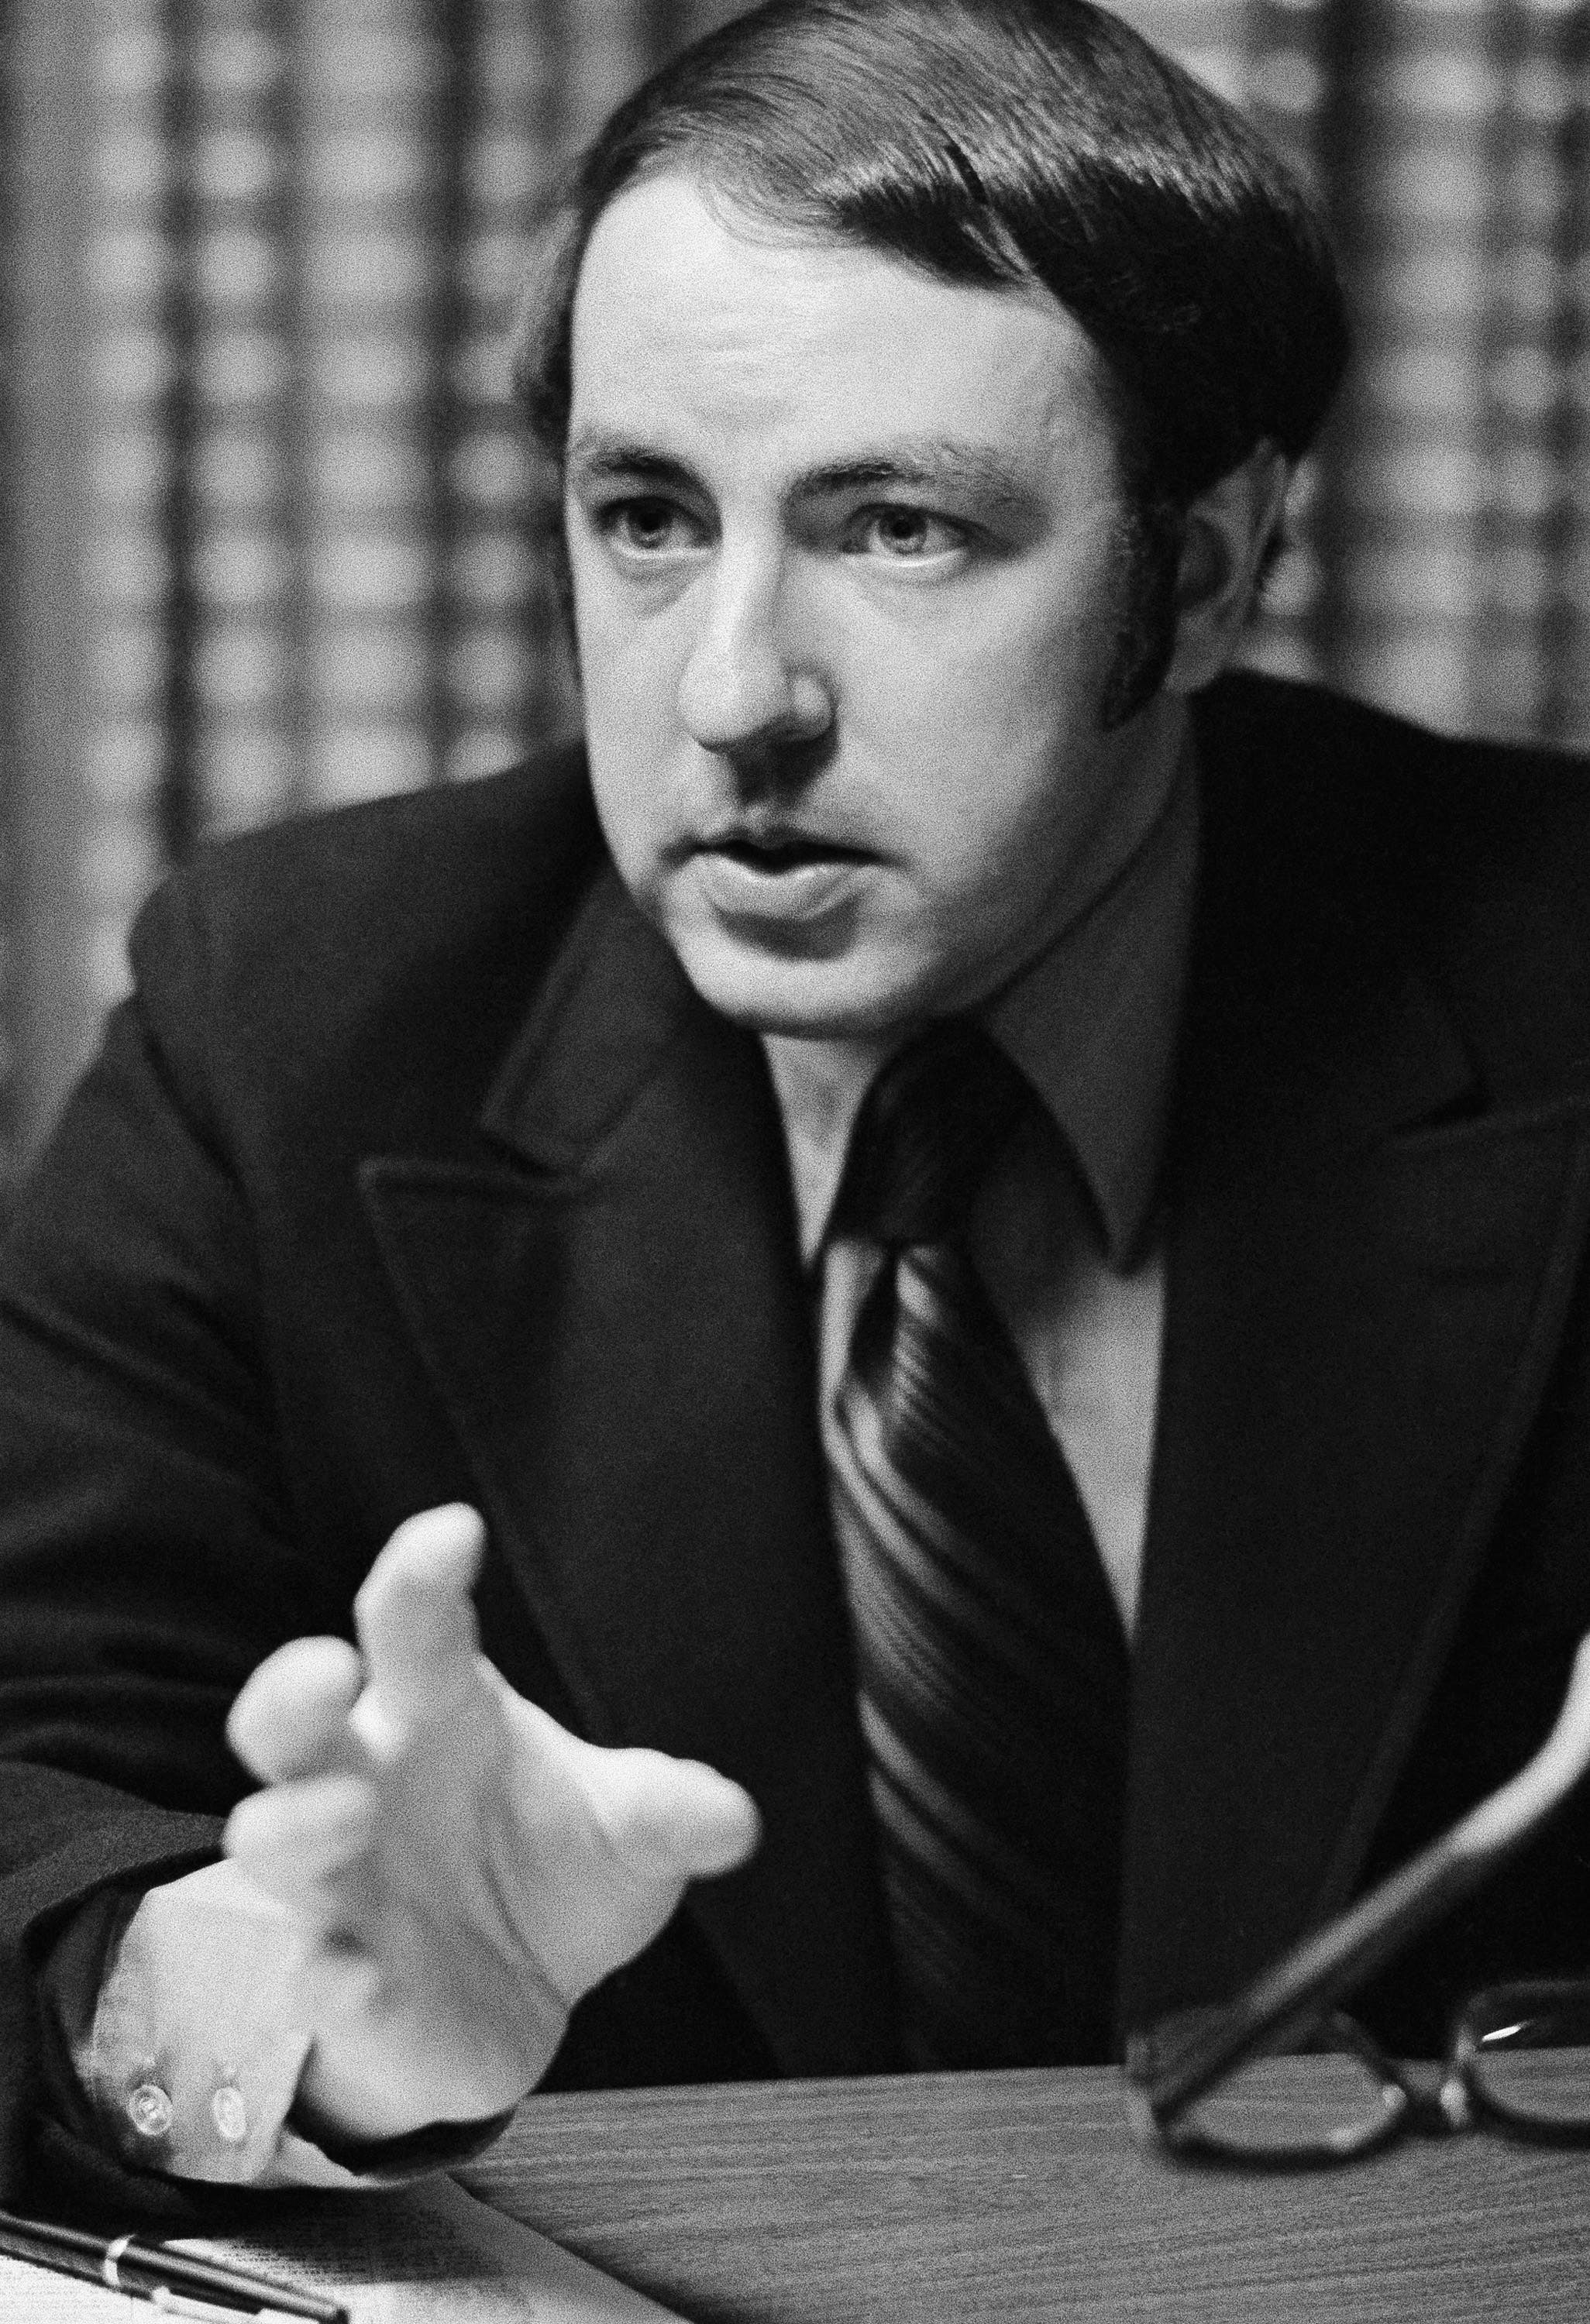 """Roger Ailes, shown in his office, May 18, 1971, New York. Ailes devised the highly successful """"man in the arena"""" televisions appearances for President Nixon in 1968. He believes that when the time comes he will be asked to resume full-time duties as Nixon's television consultant in the 1972 campaign. Meanwhile, he remains a part-time consultant to the President for special projects, as well as having returned to television production. (AP Photo/Jerry Mosey)"""